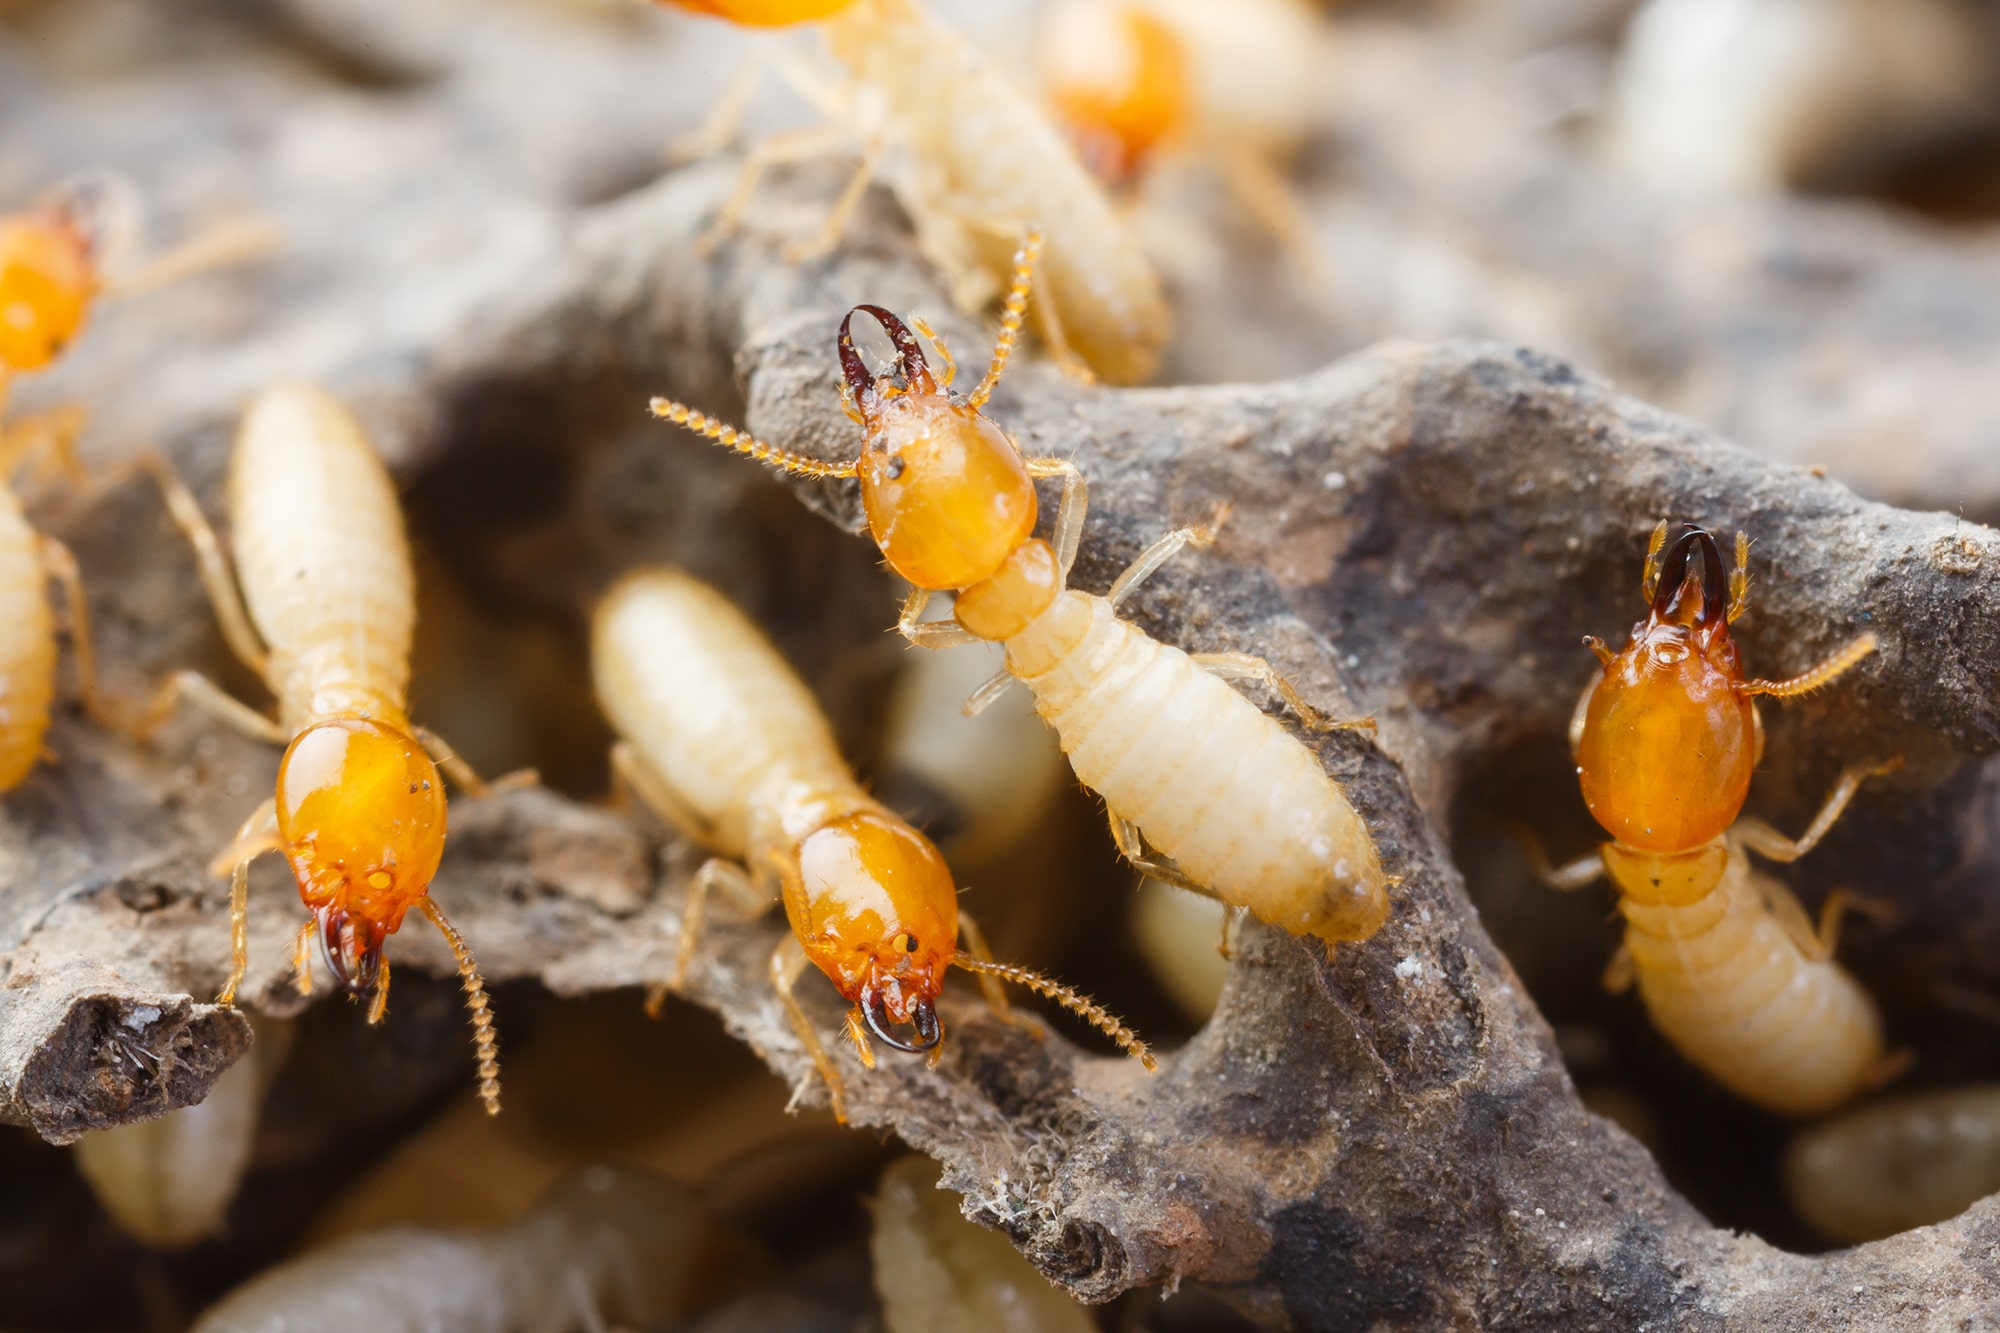 We Specialise in Combined Building & Pest Inspections